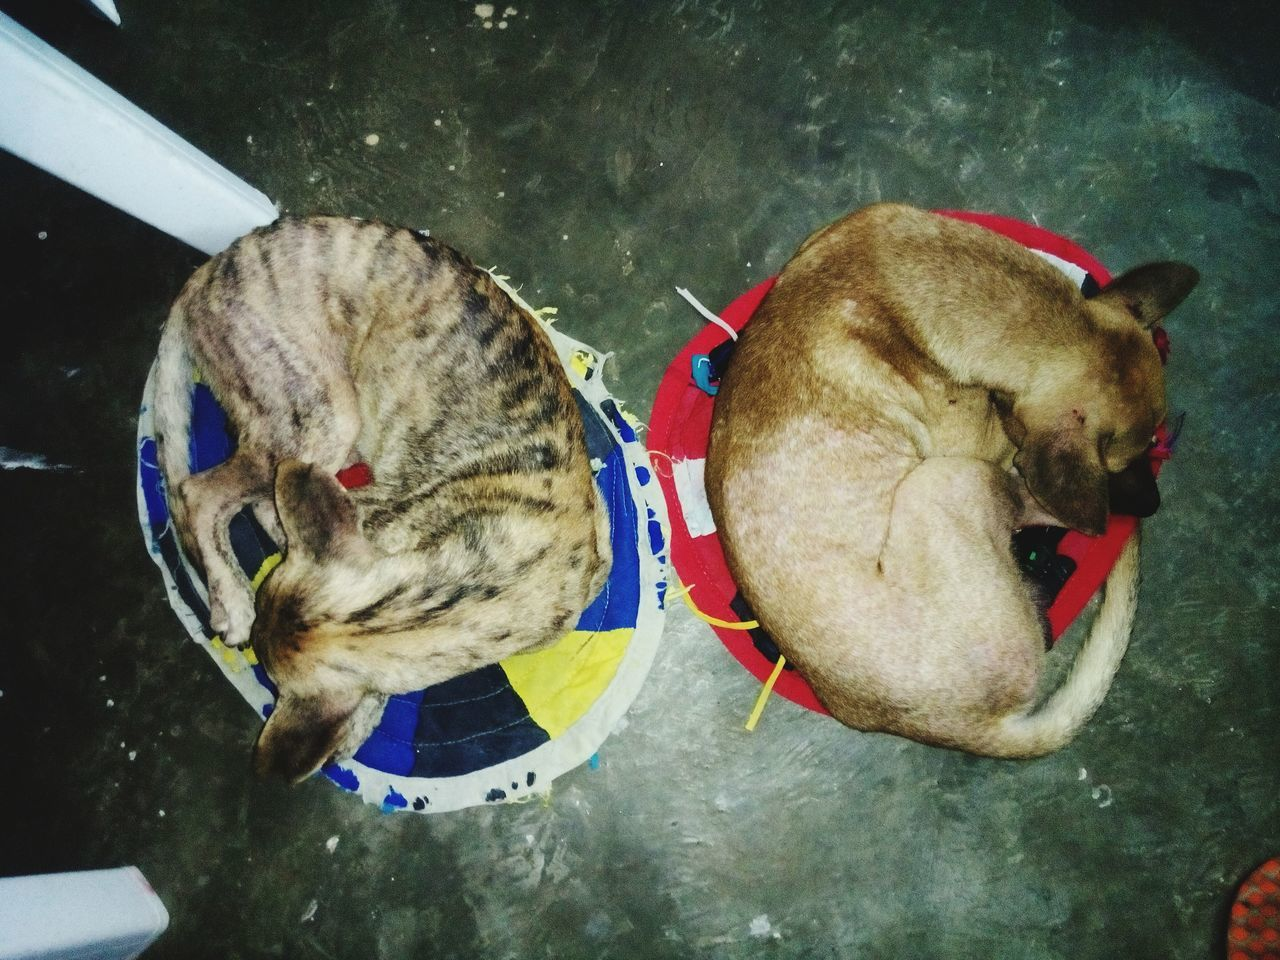 The OO Mission meet our two dogs, Iggy and E.C. Aspin Sleeping Cold Days Gooddog Dog Lovers🐾 Small Dogs  Mobilephotography